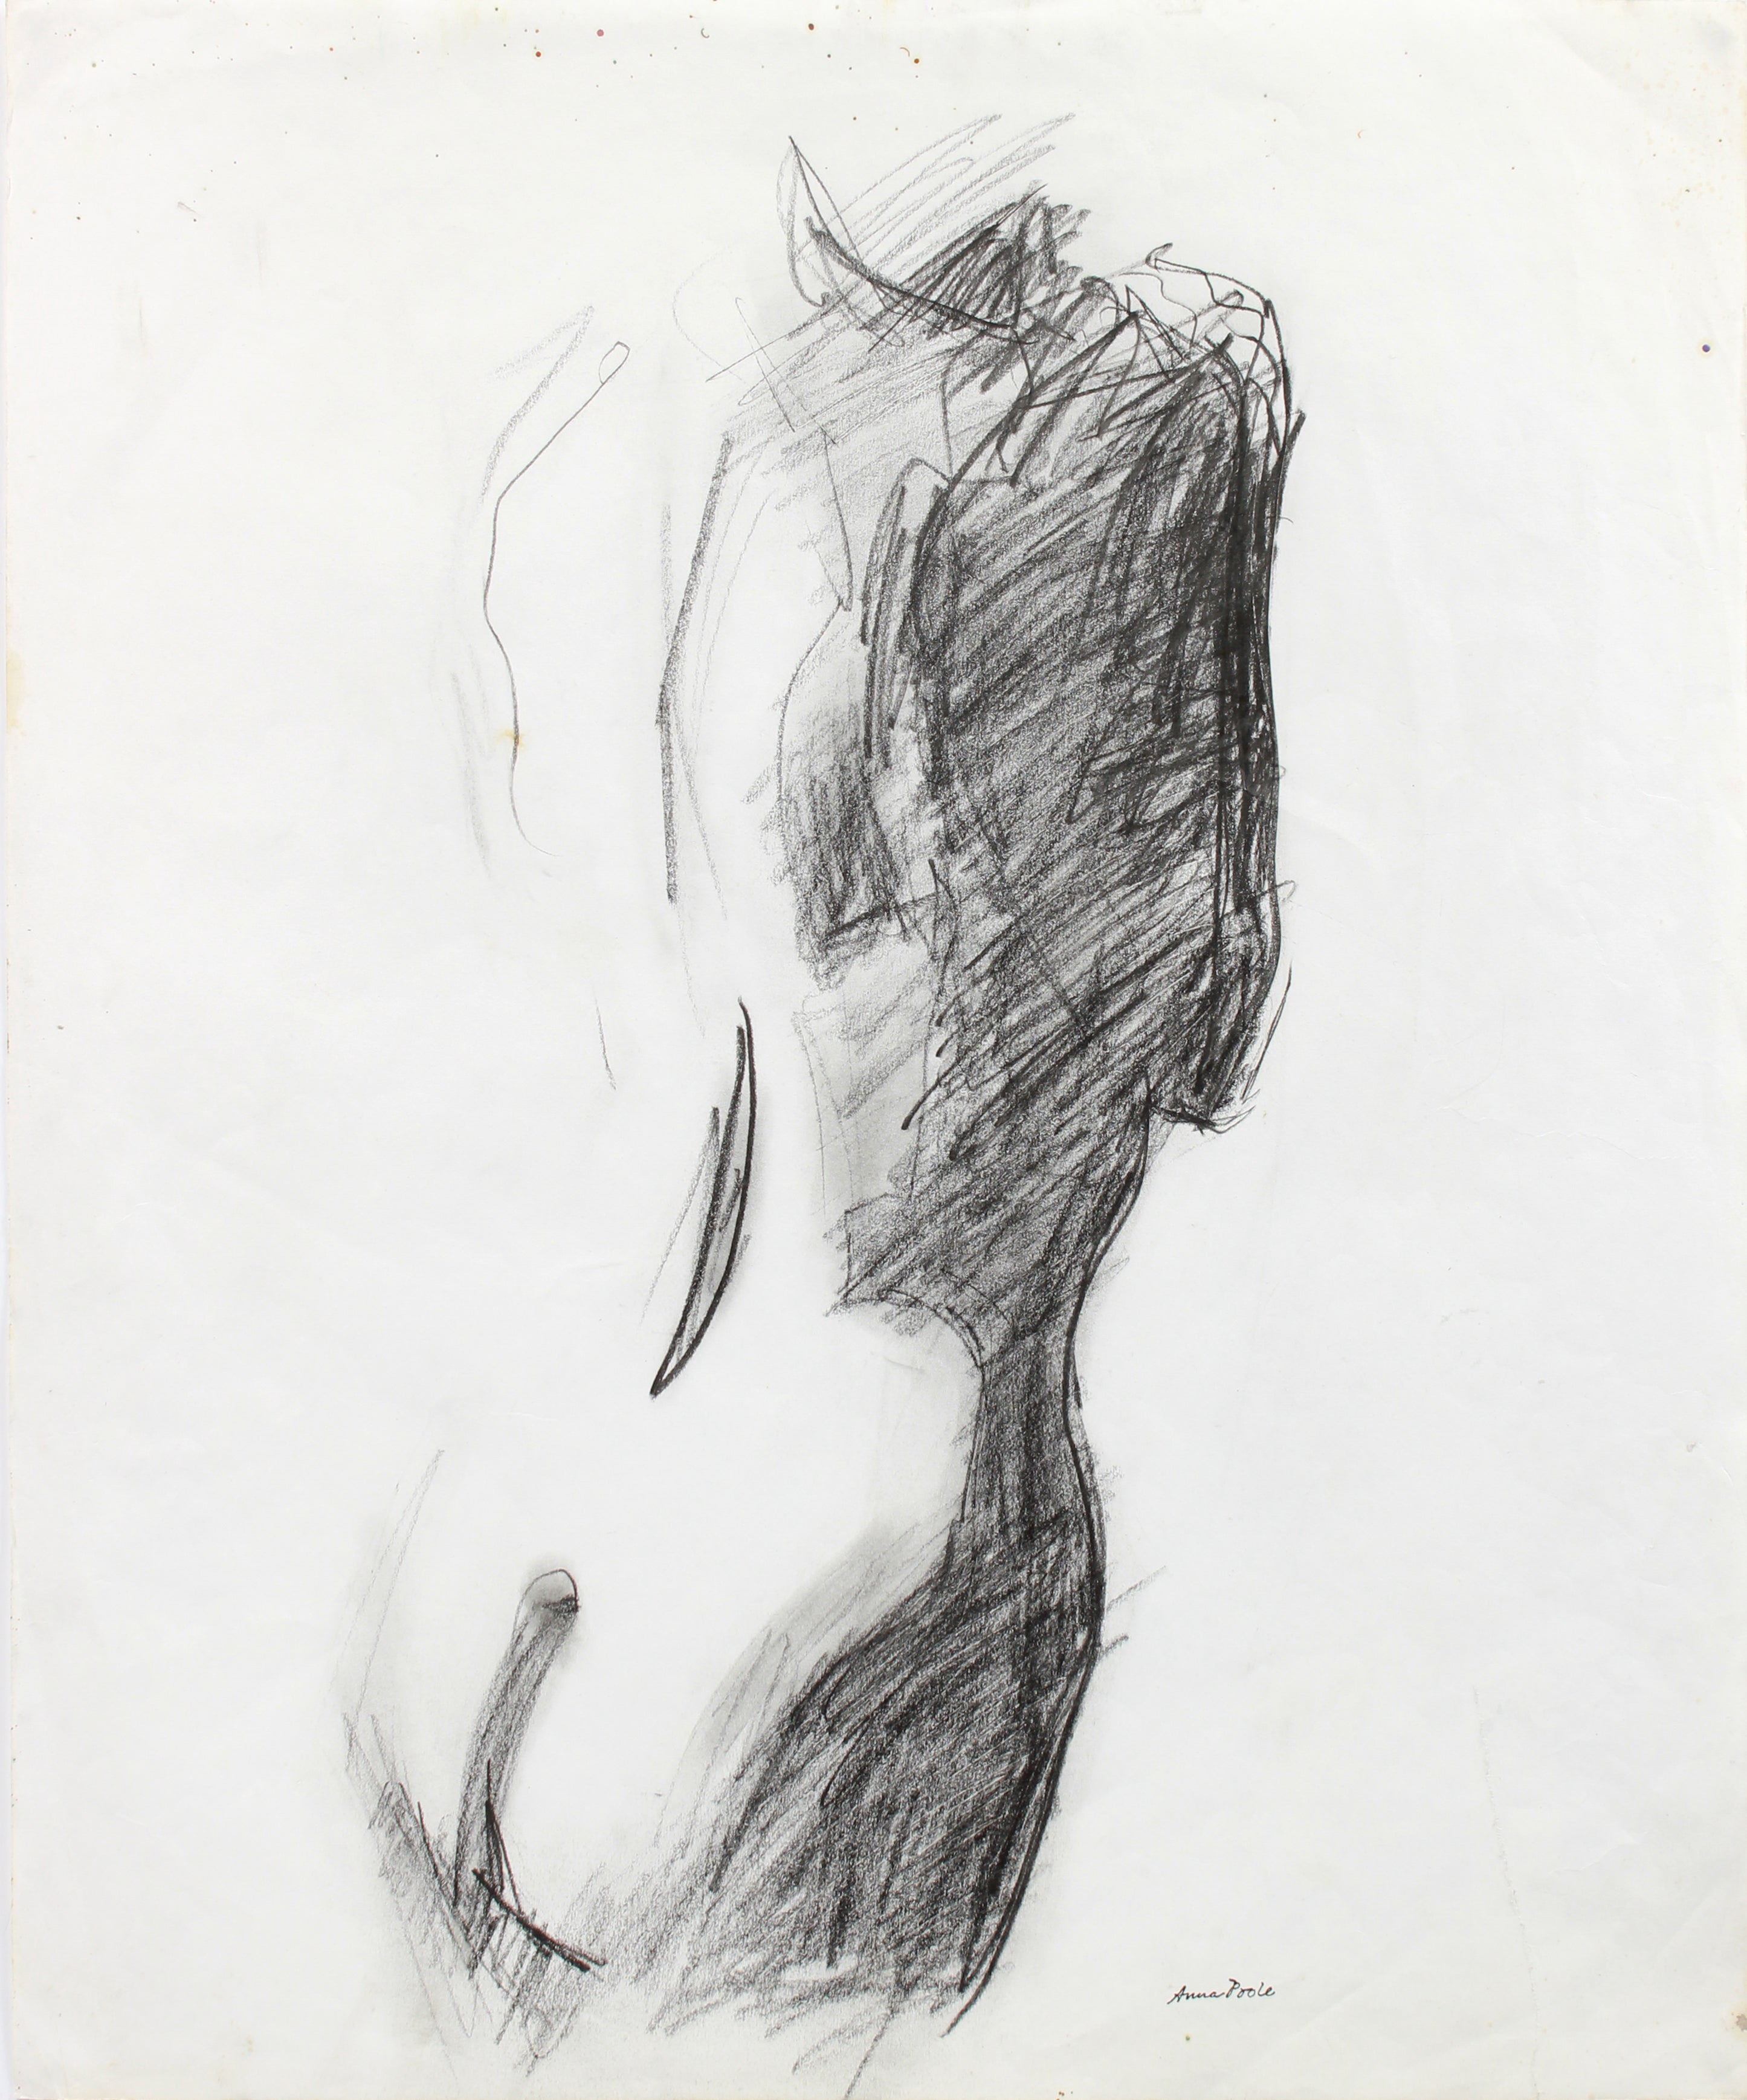 Anna poole female nude graphite on paper figure drawing late 20th century for sale at 1stdibs